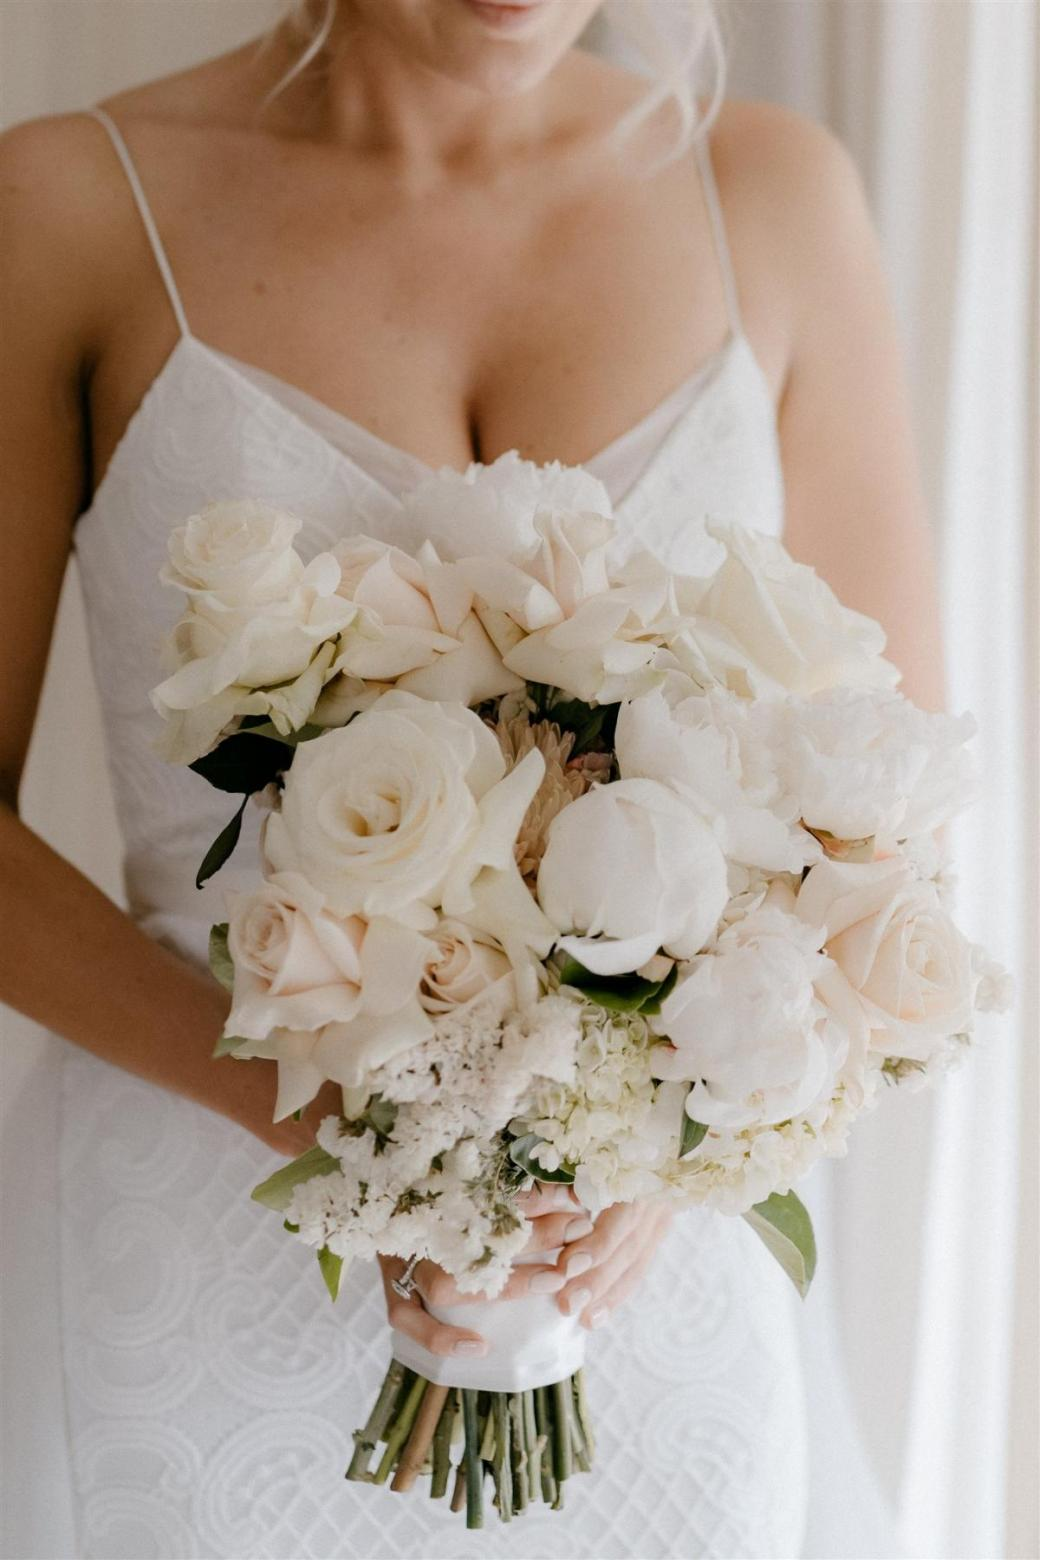 KWH bride Ashleigh's natural paletted bridal bouquet, featuring white and blush roses.